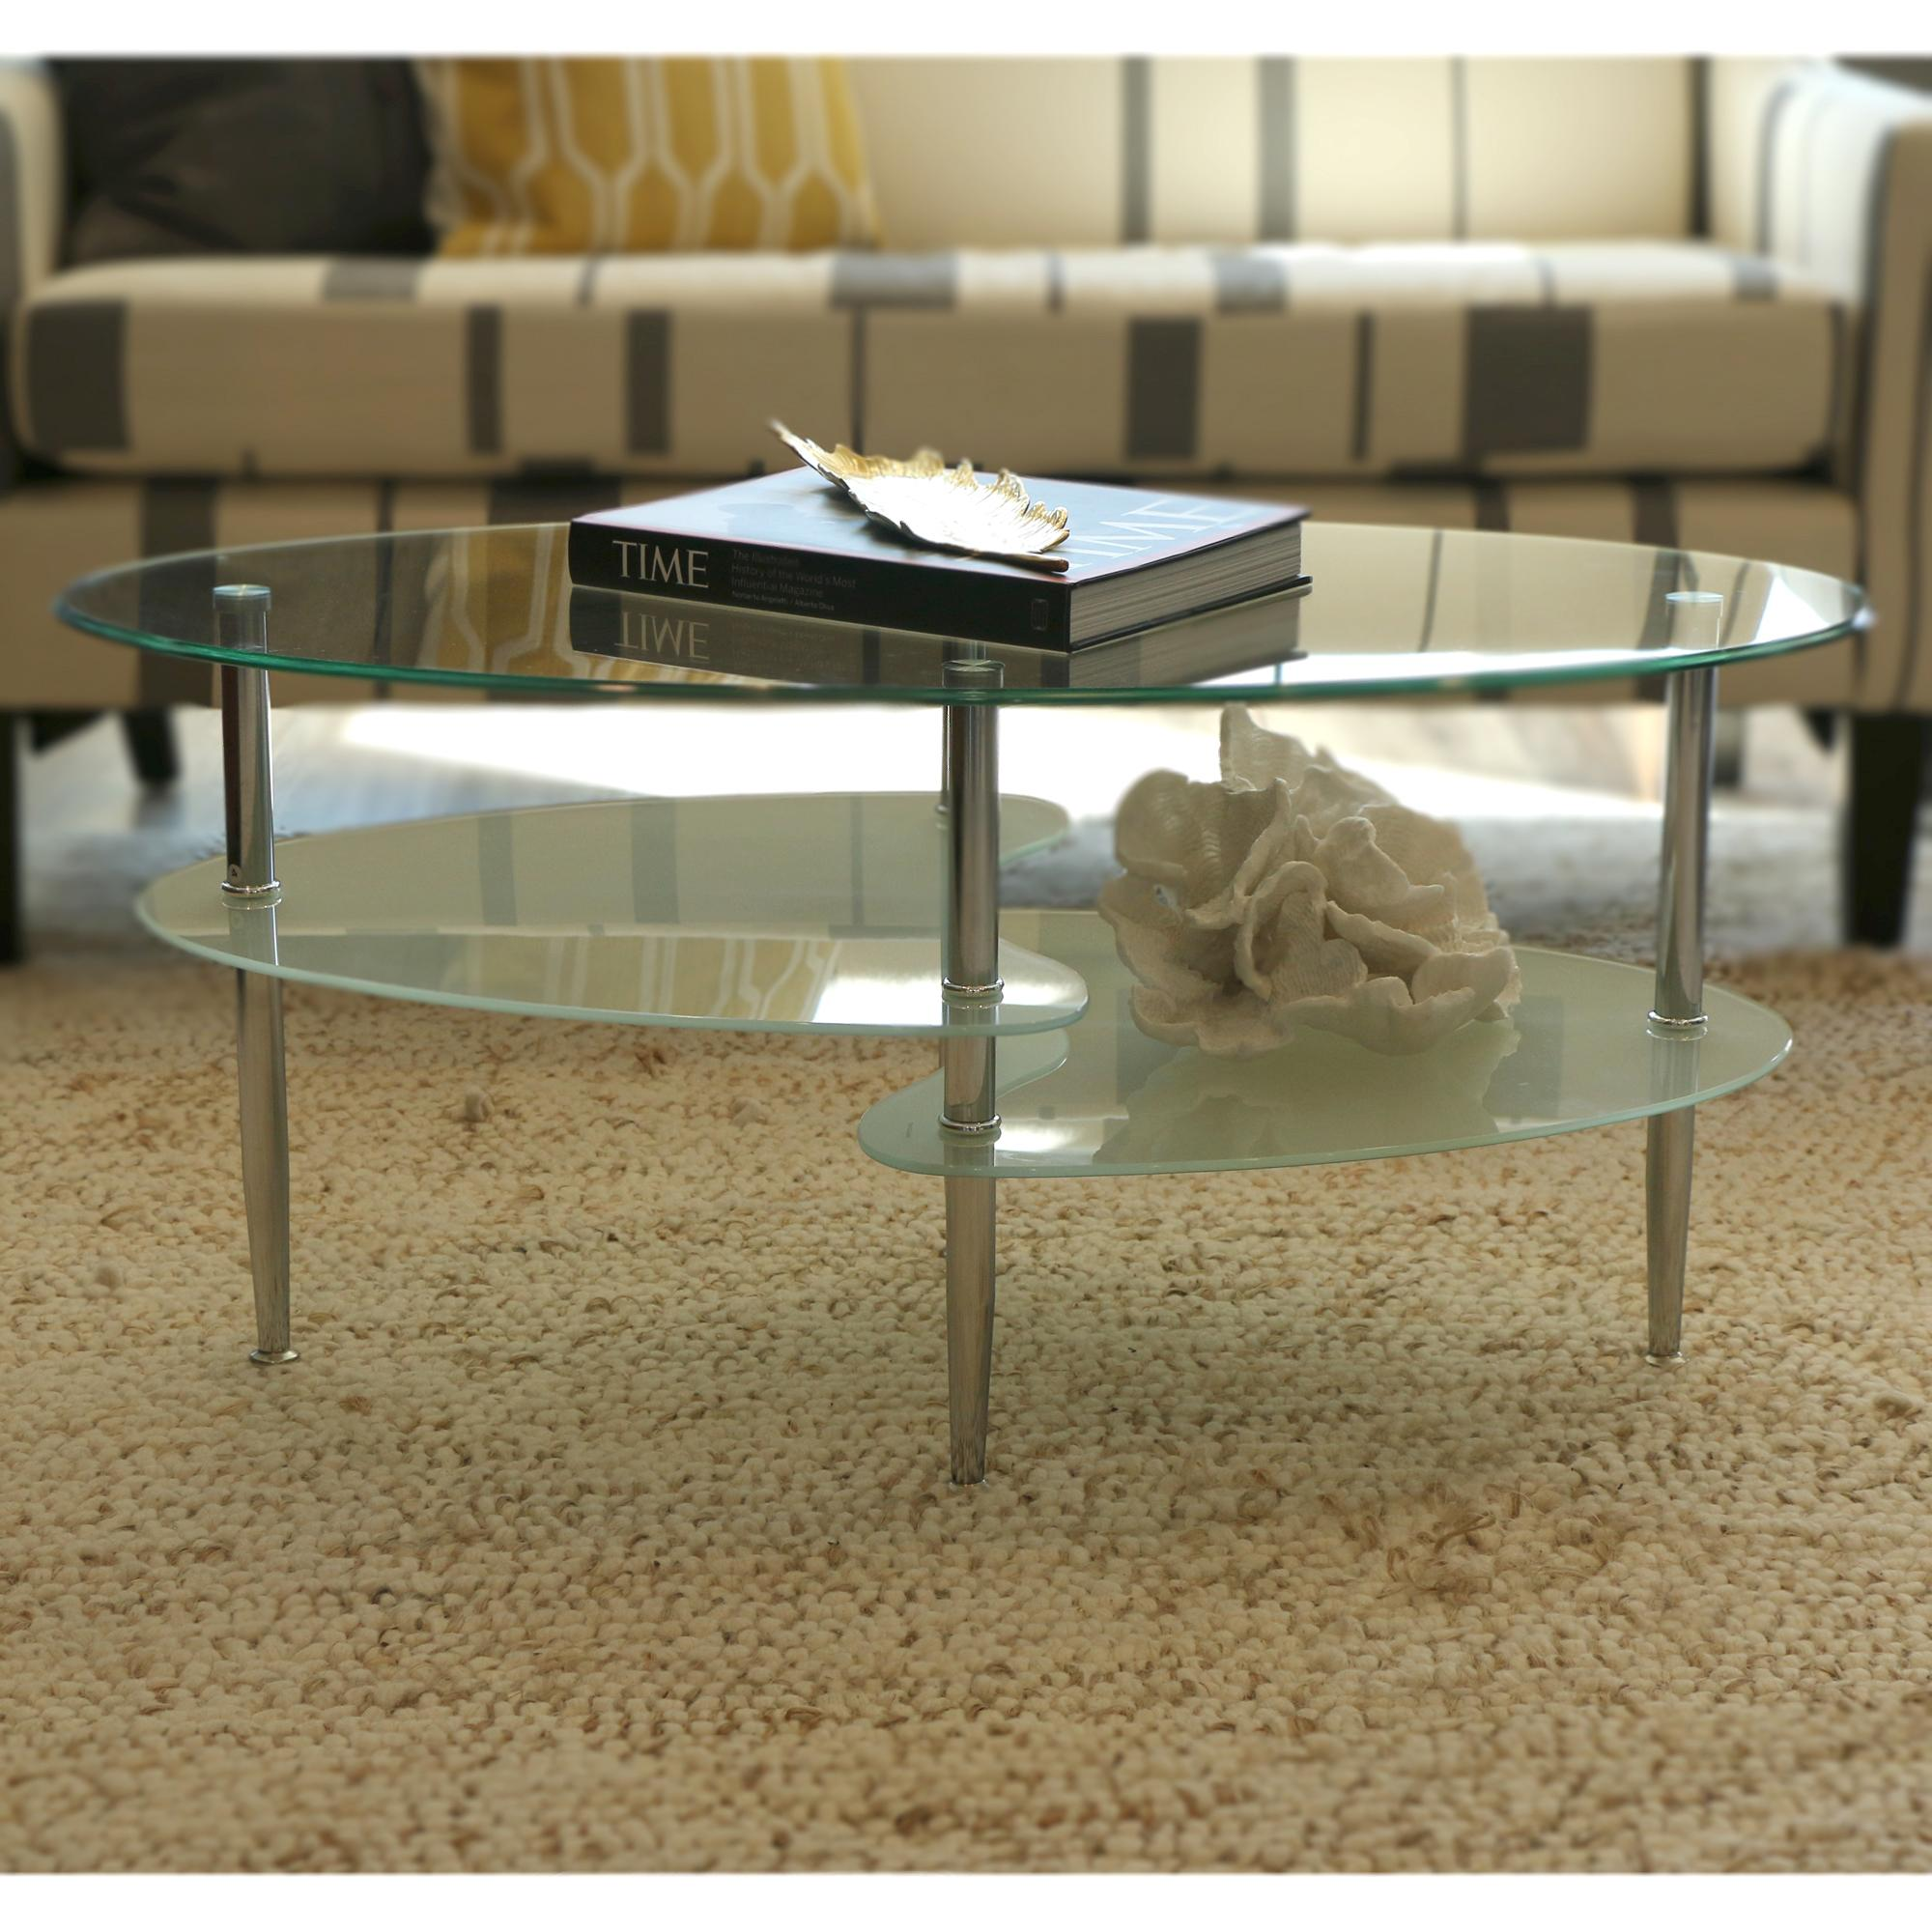 Oval coffee table glass top - View Larger